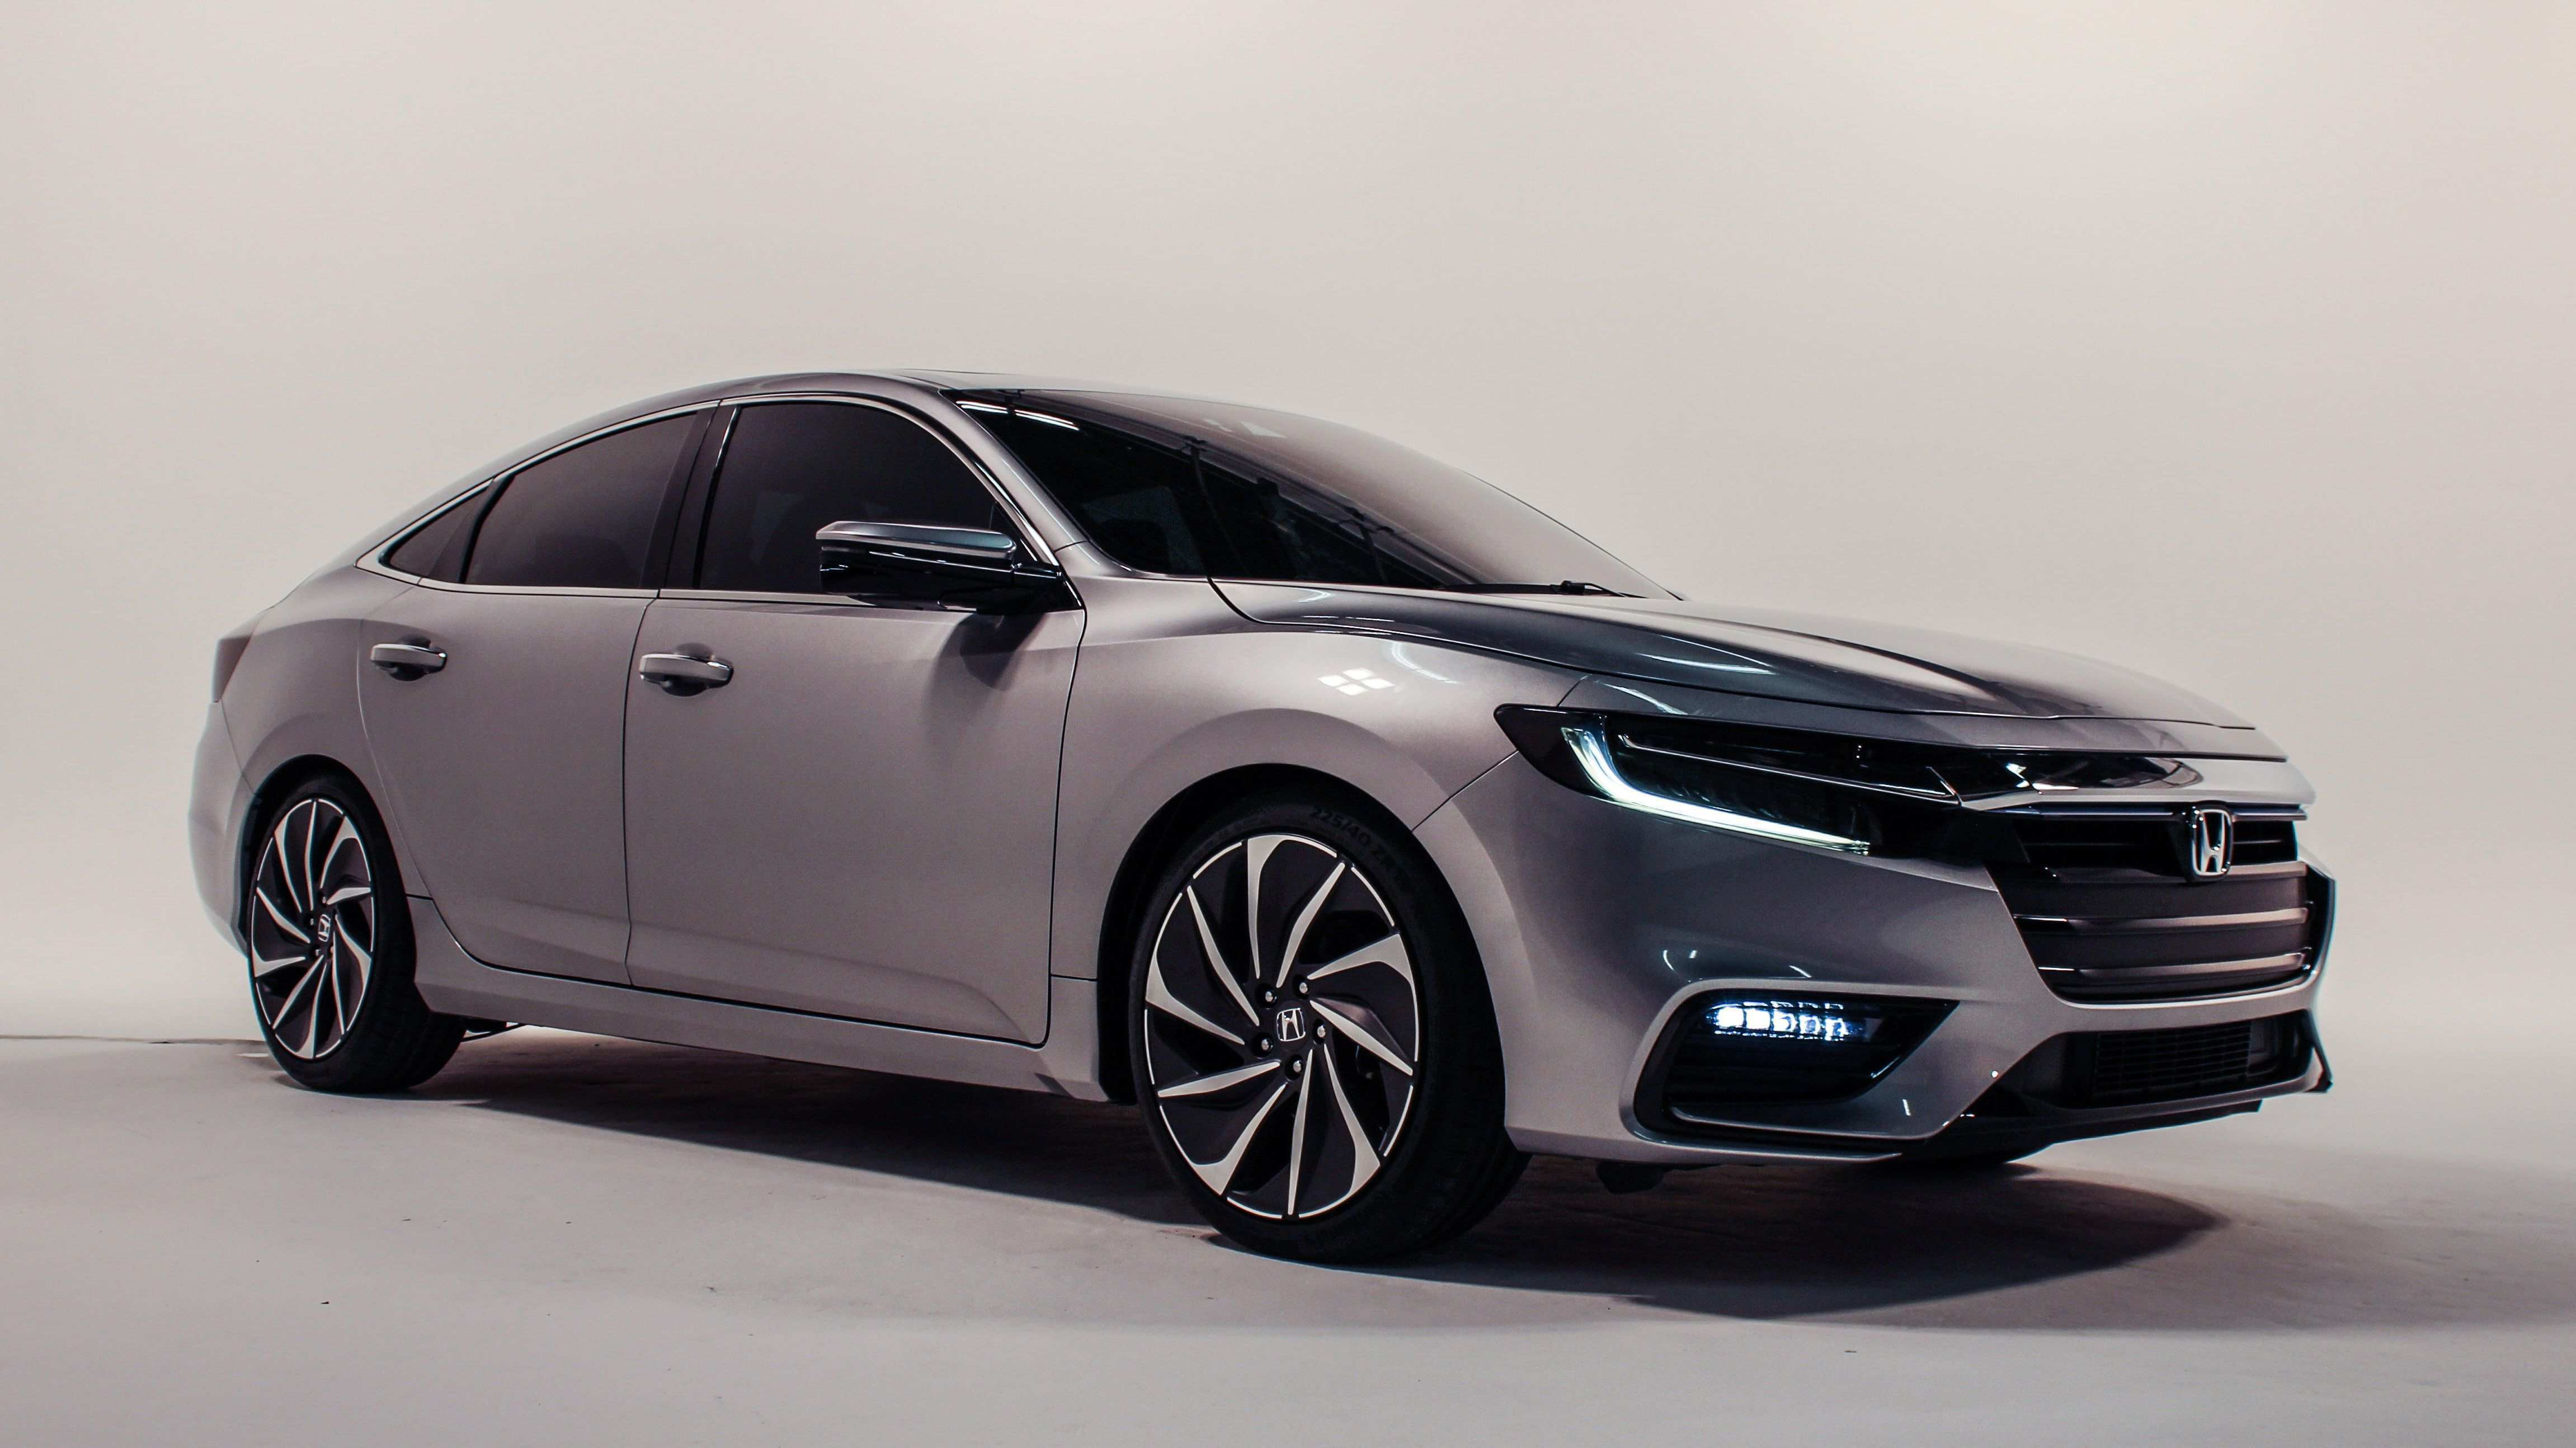 83 The Best 2019 Honda Civic Hybrid Performance And New Engine